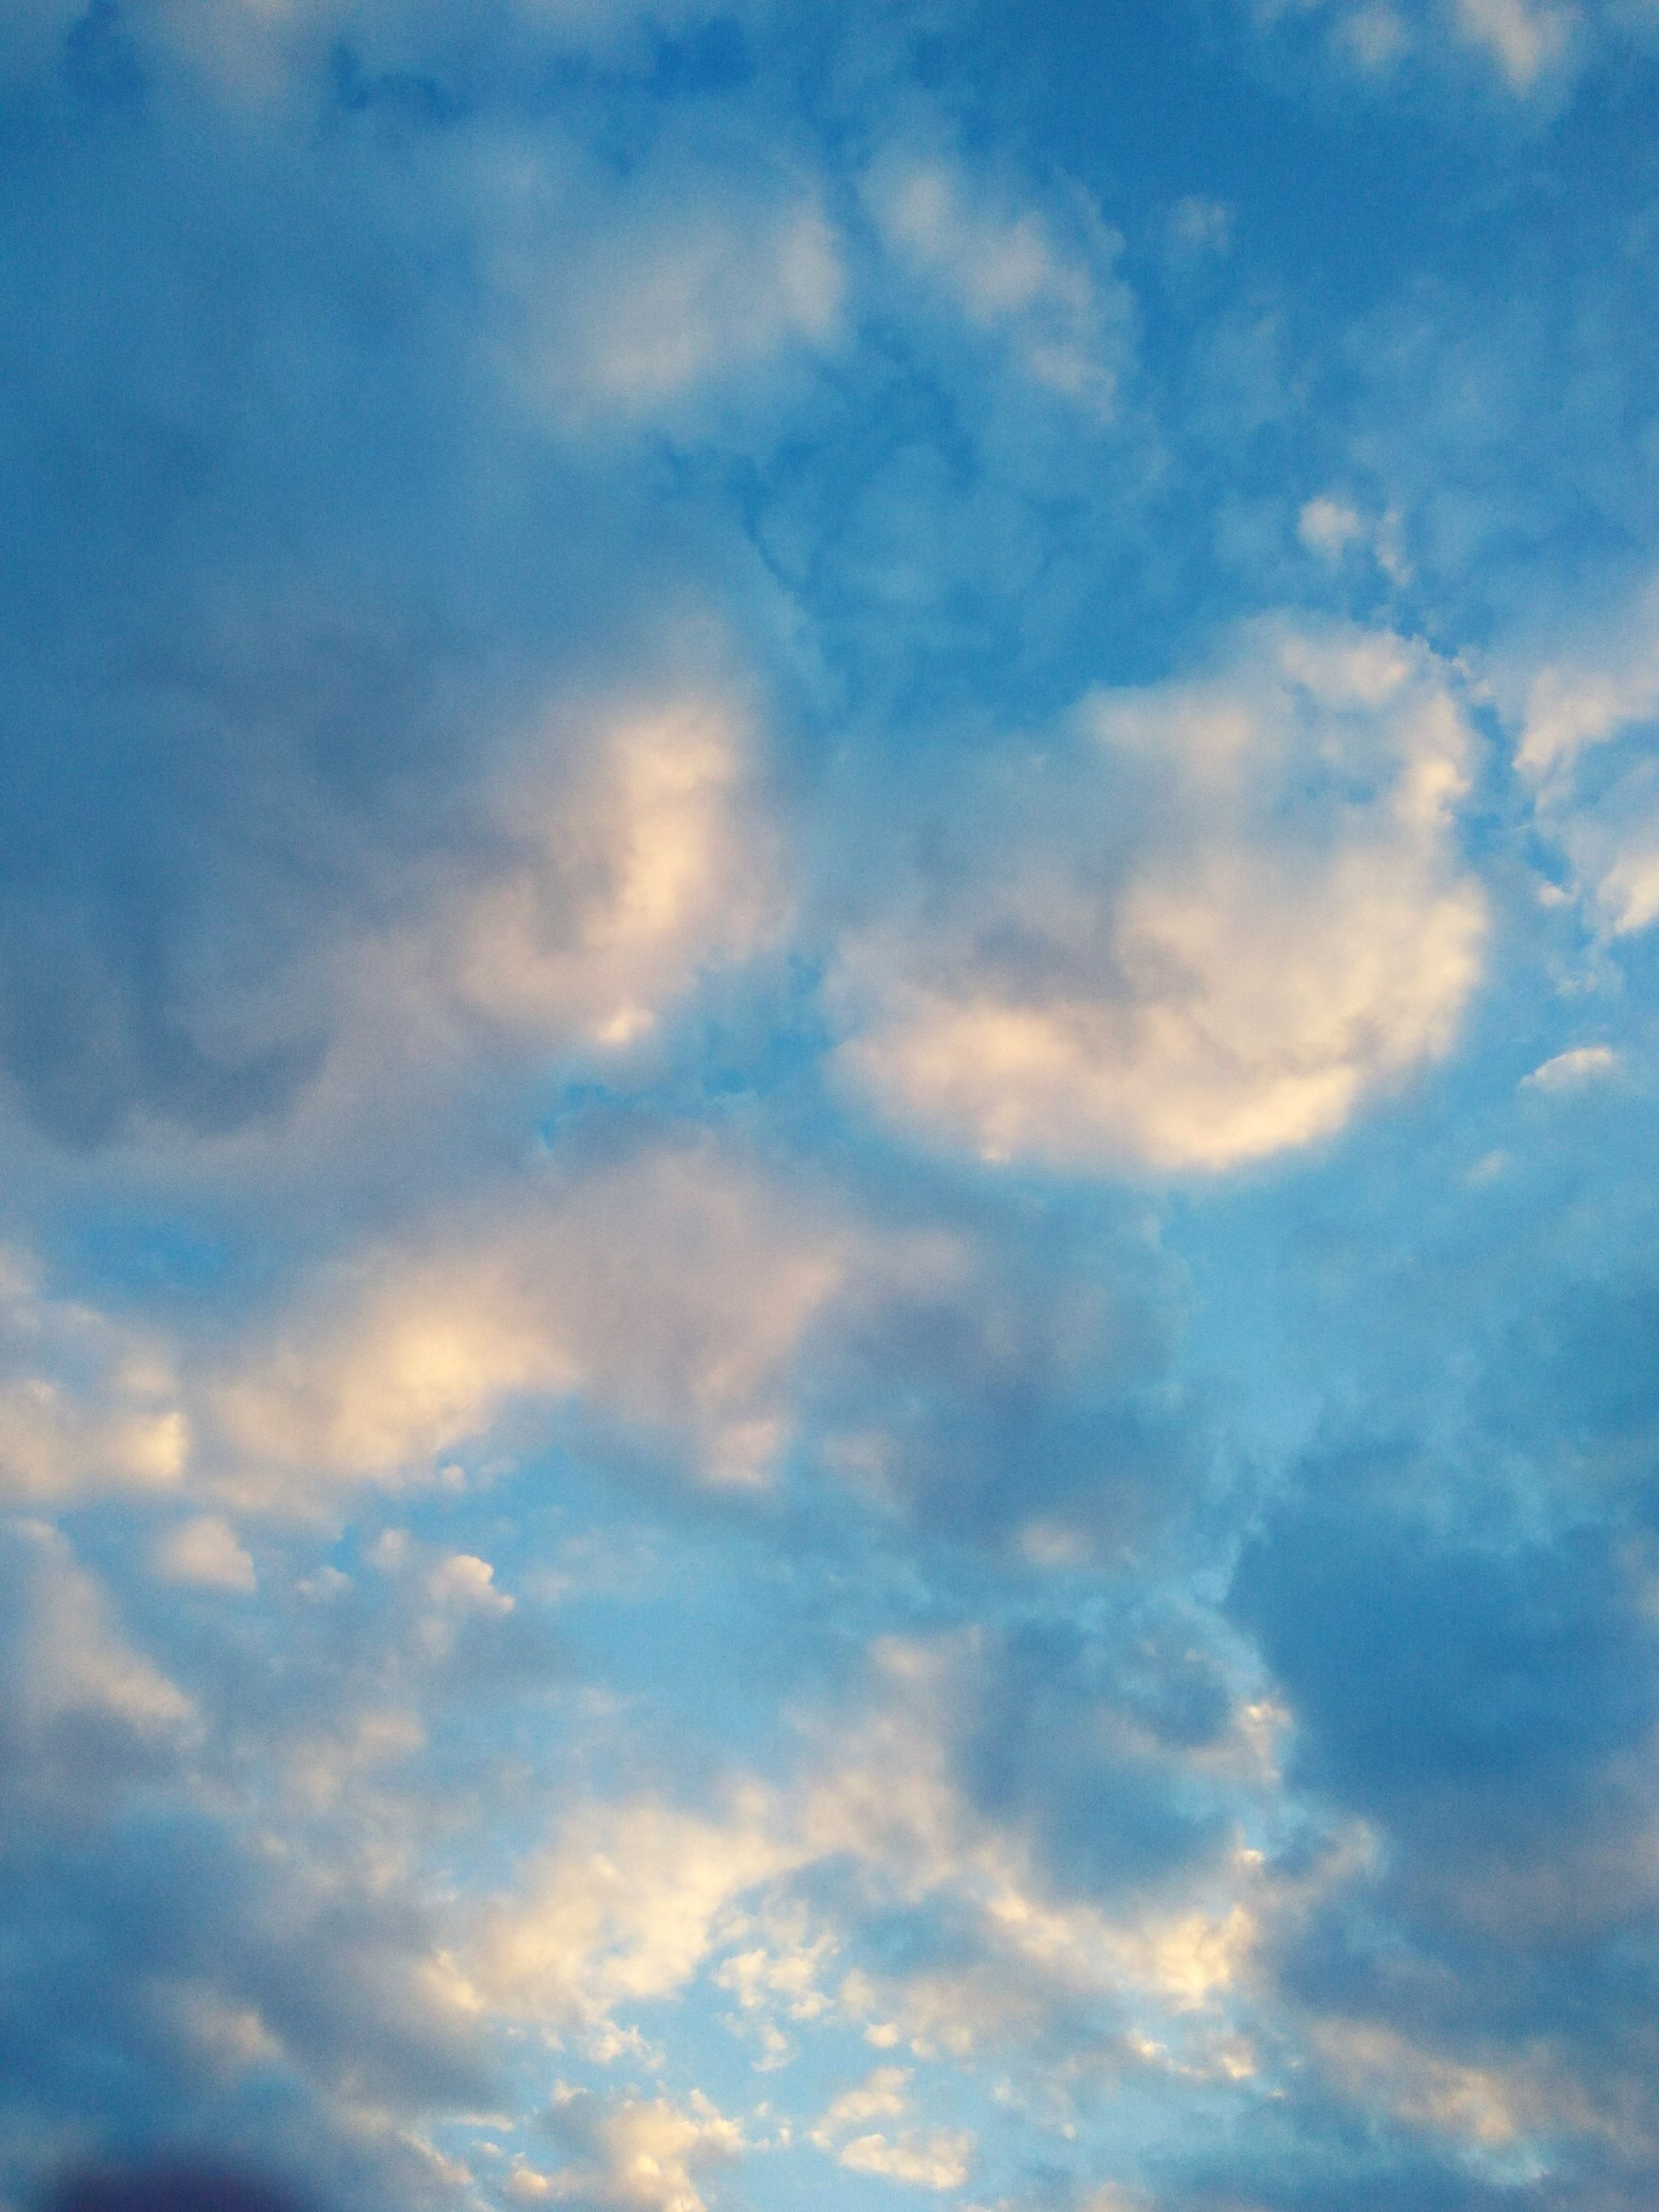 sky, cloud - sky, blue, nature, backgrounds, low angle view, beauty in nature, no people, tranquility, full frame, heaven, scenics, outdoors, sky only, day, close-up